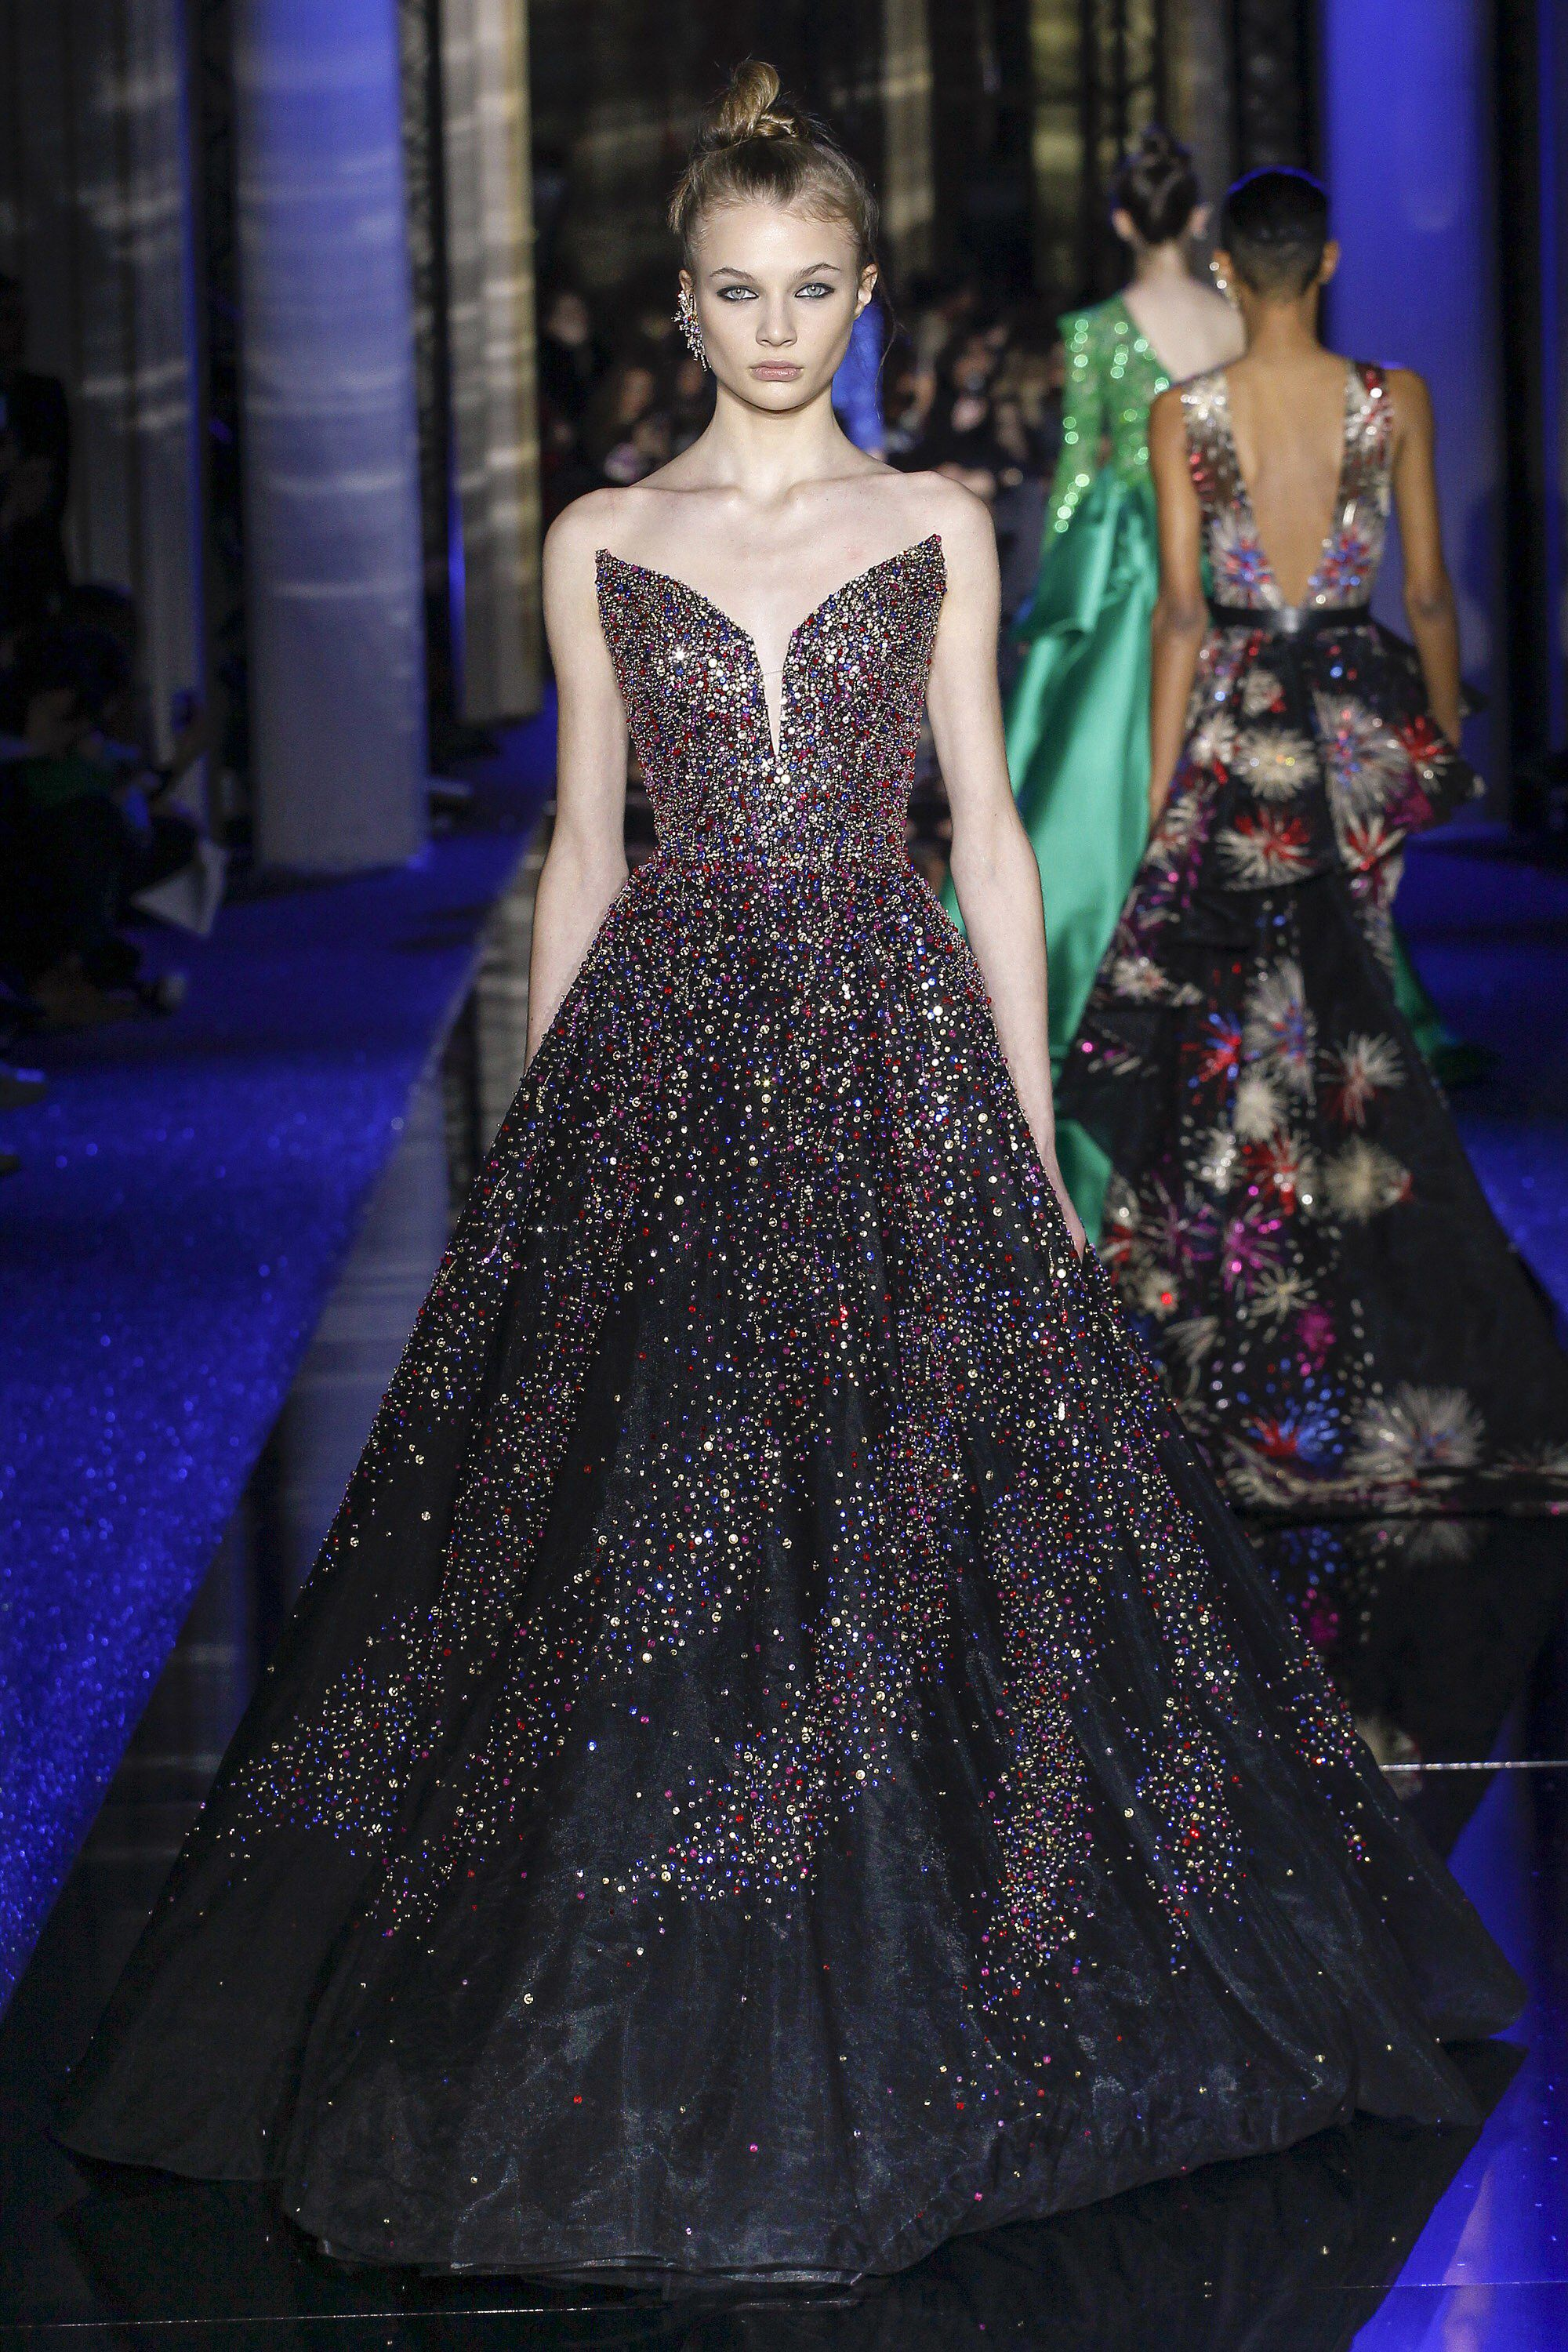 Zuhair Murad Spring 2017 Couture Fashion Show | Glam Gowns ...